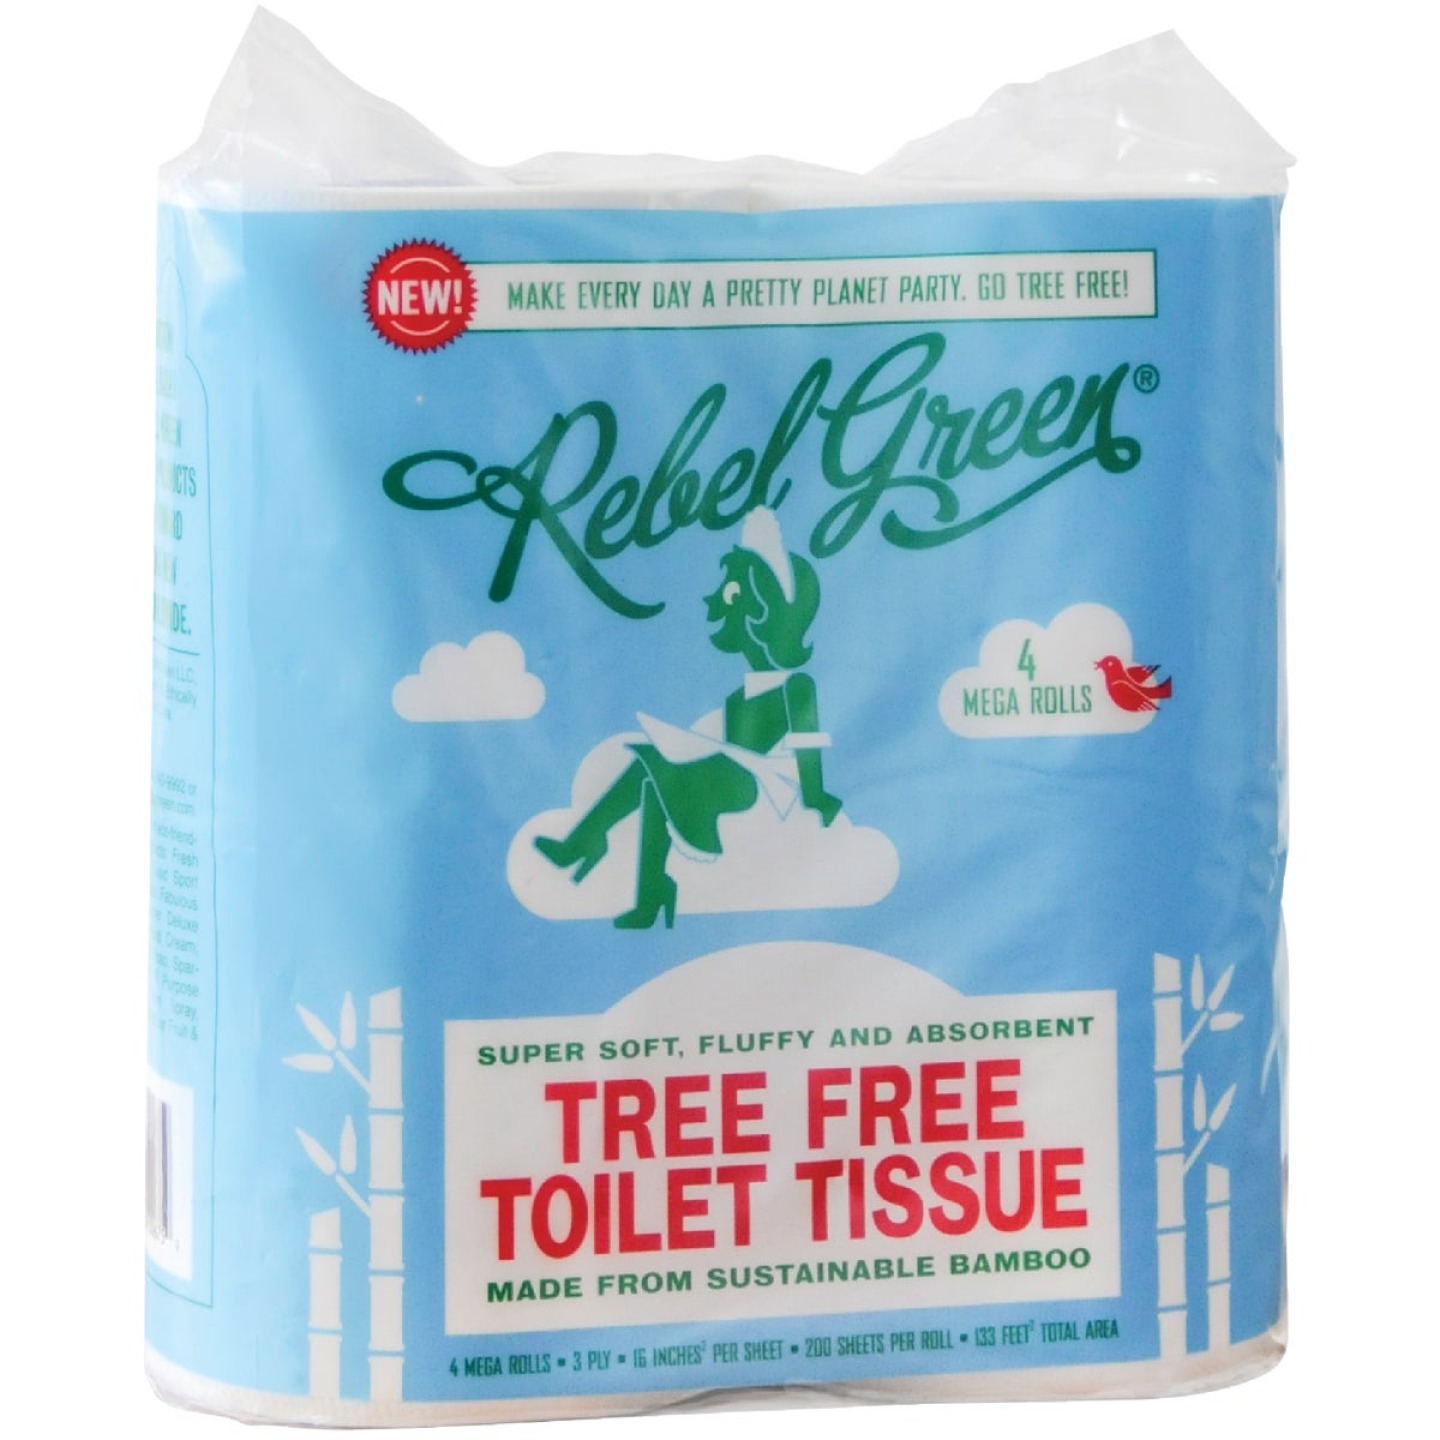 Rebel Green Tree Free Toilet Paper (4 Mega Rolls) Image 1